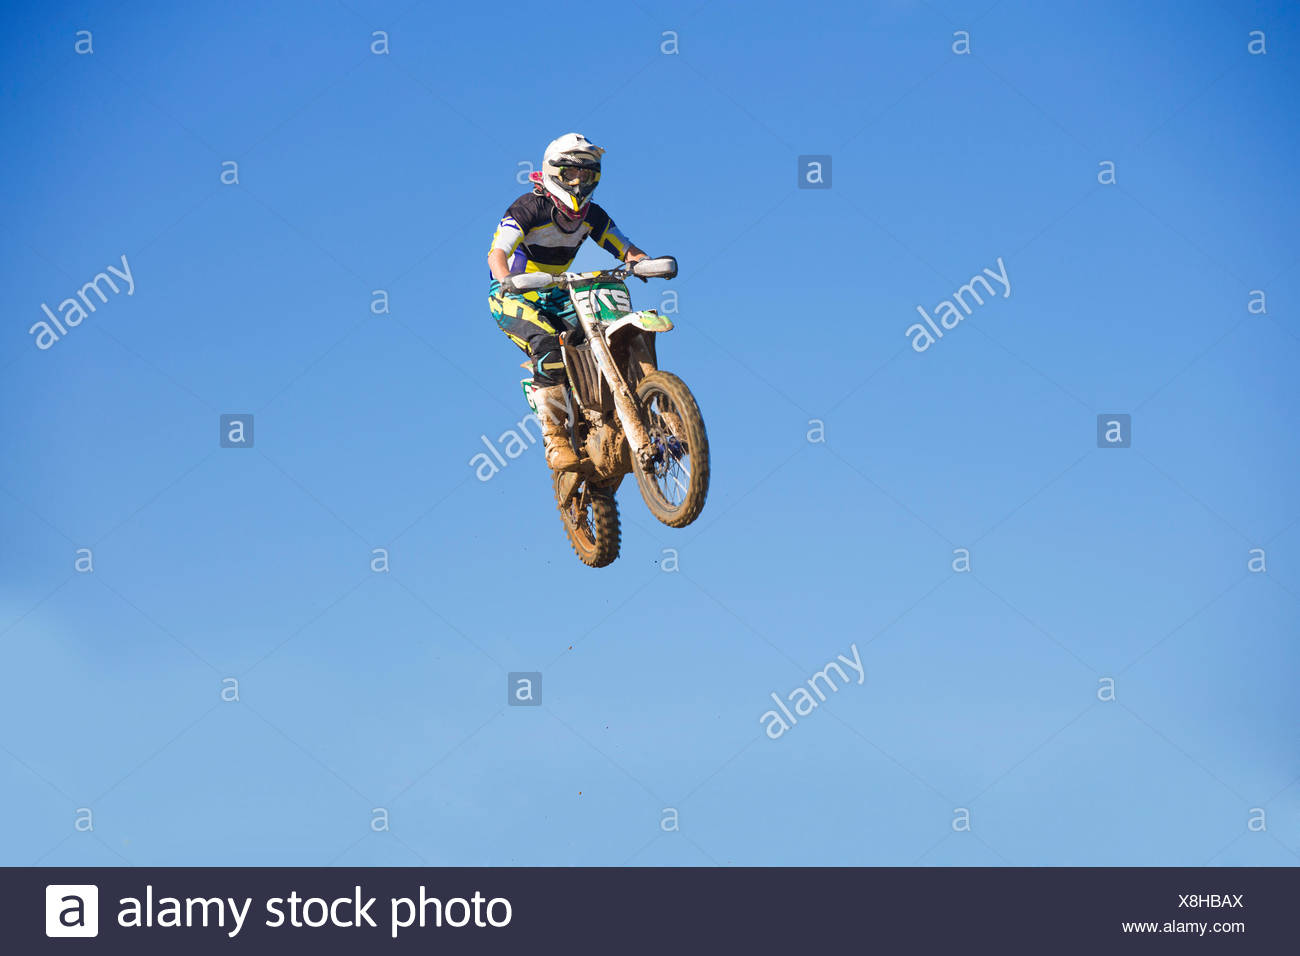 Young male motocross racer jumping mid air against blue sky - Stock Image